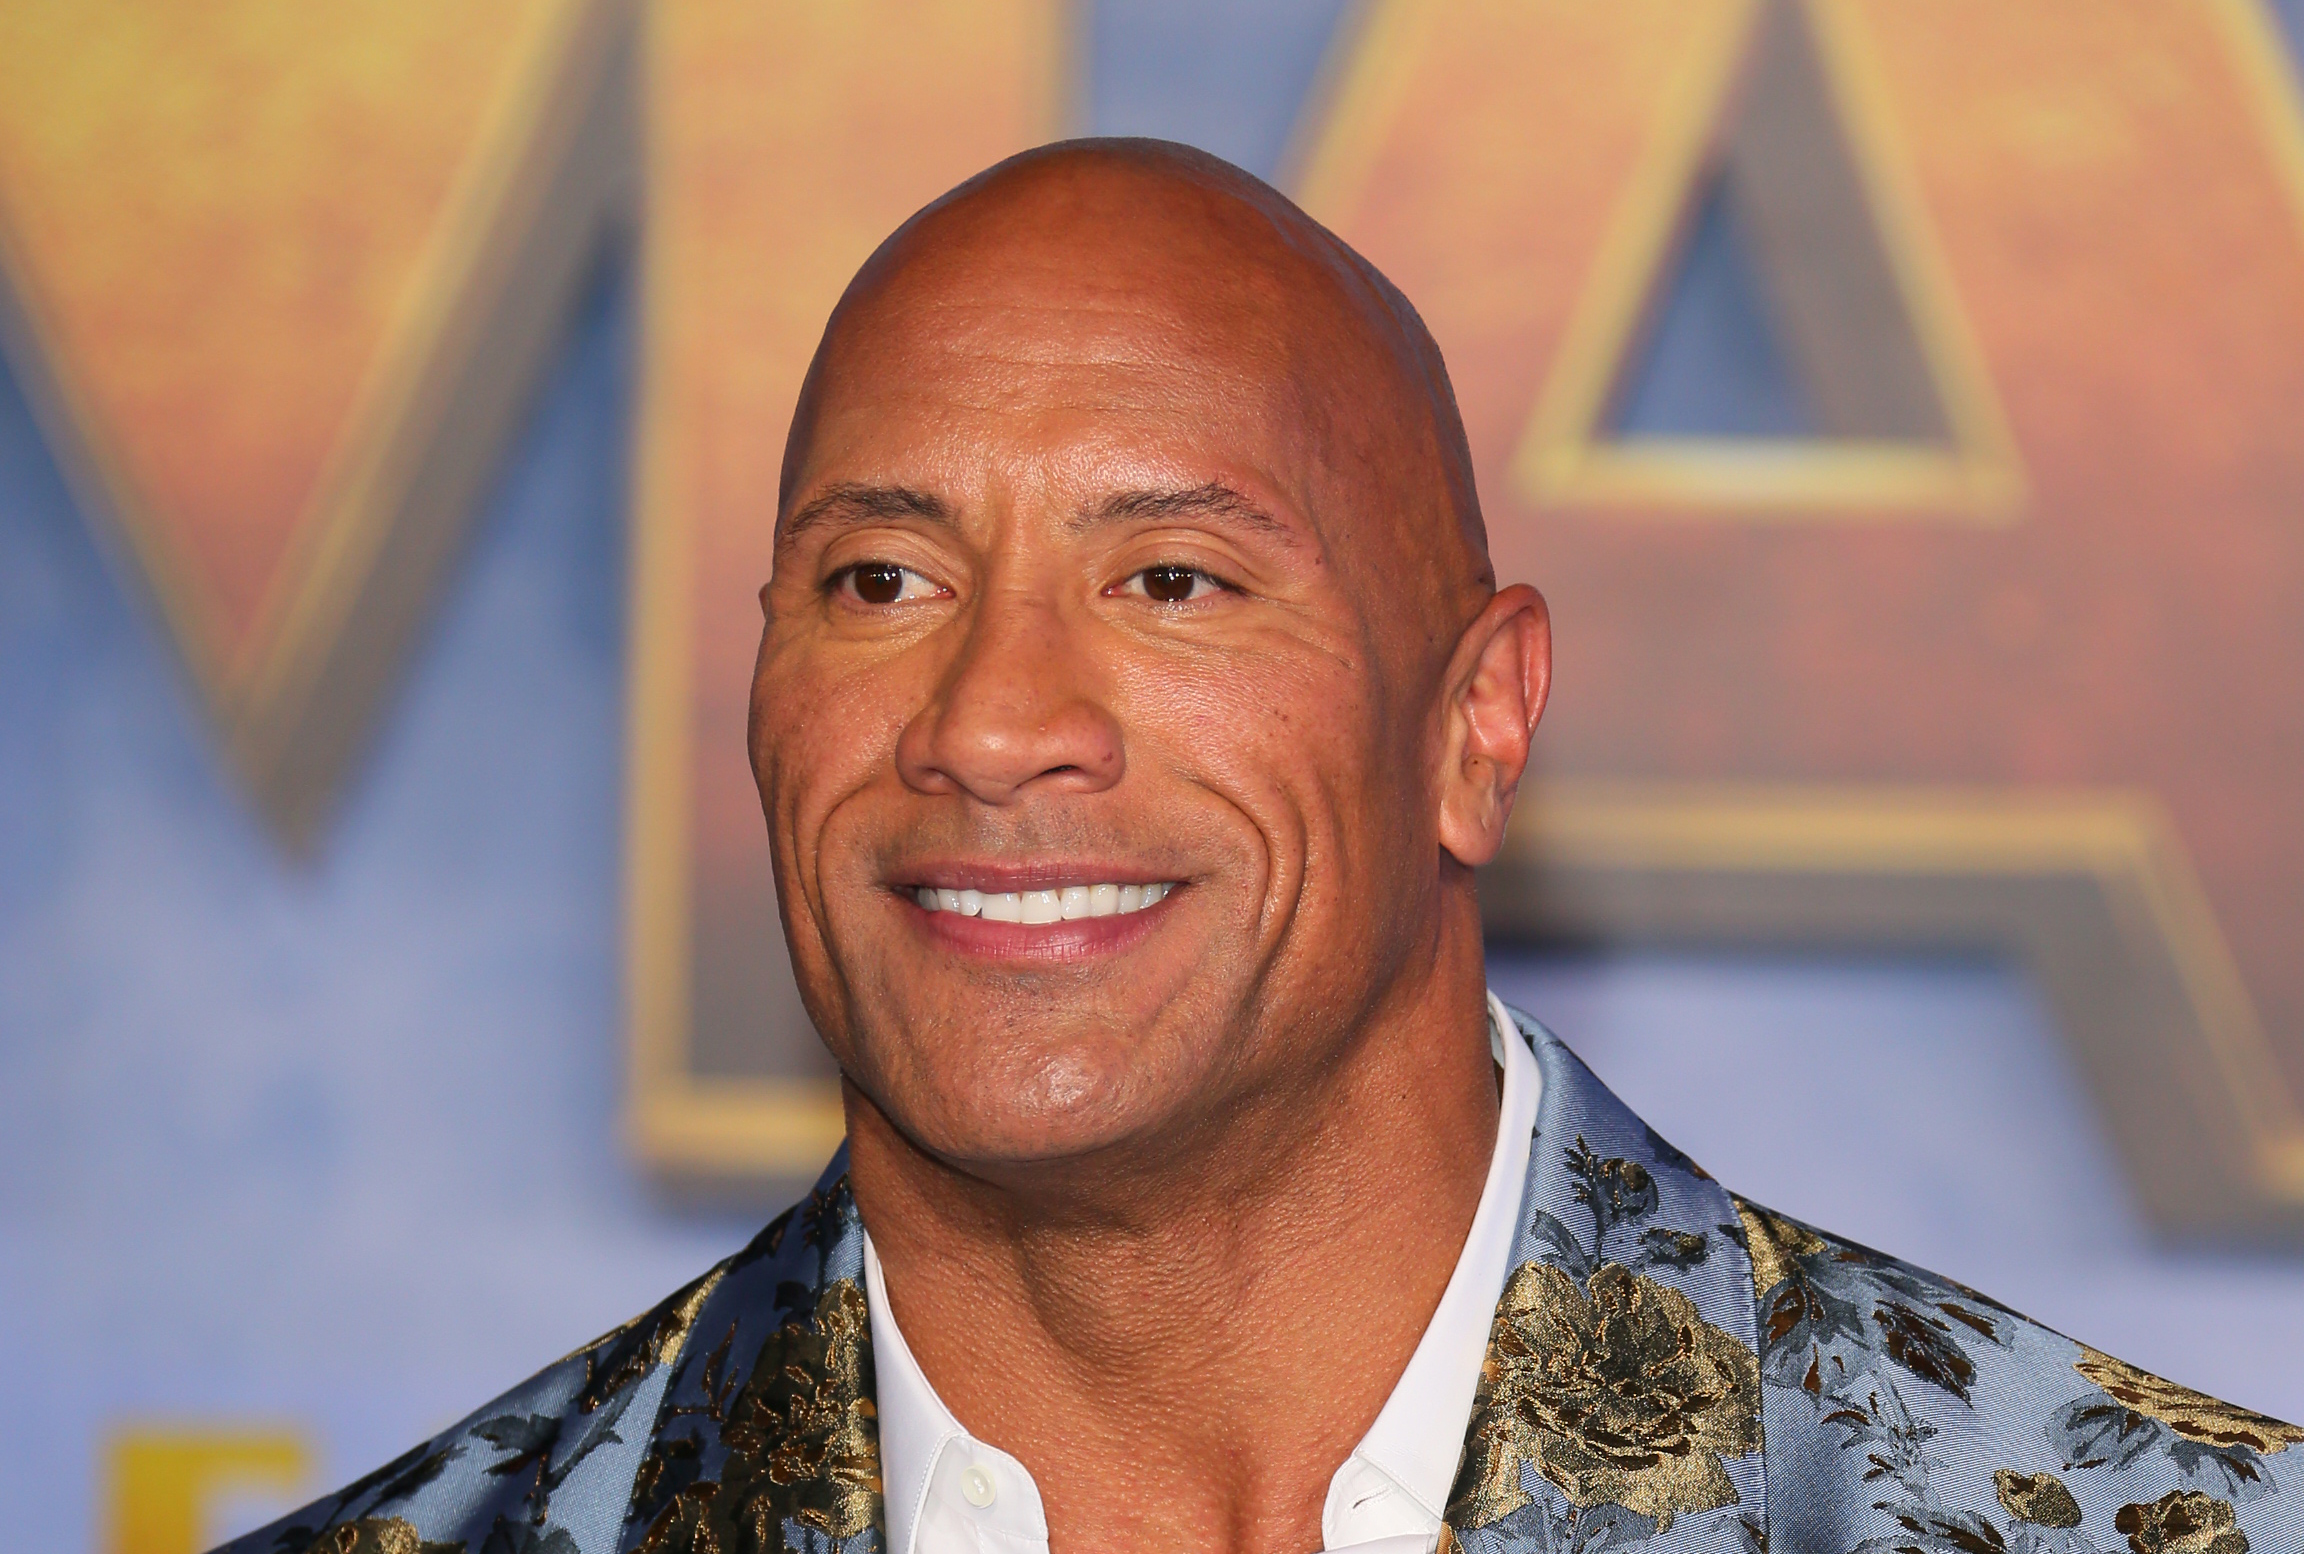 The Rock, in a towel, sings ultimate hand-washing song for 'Moana' fans